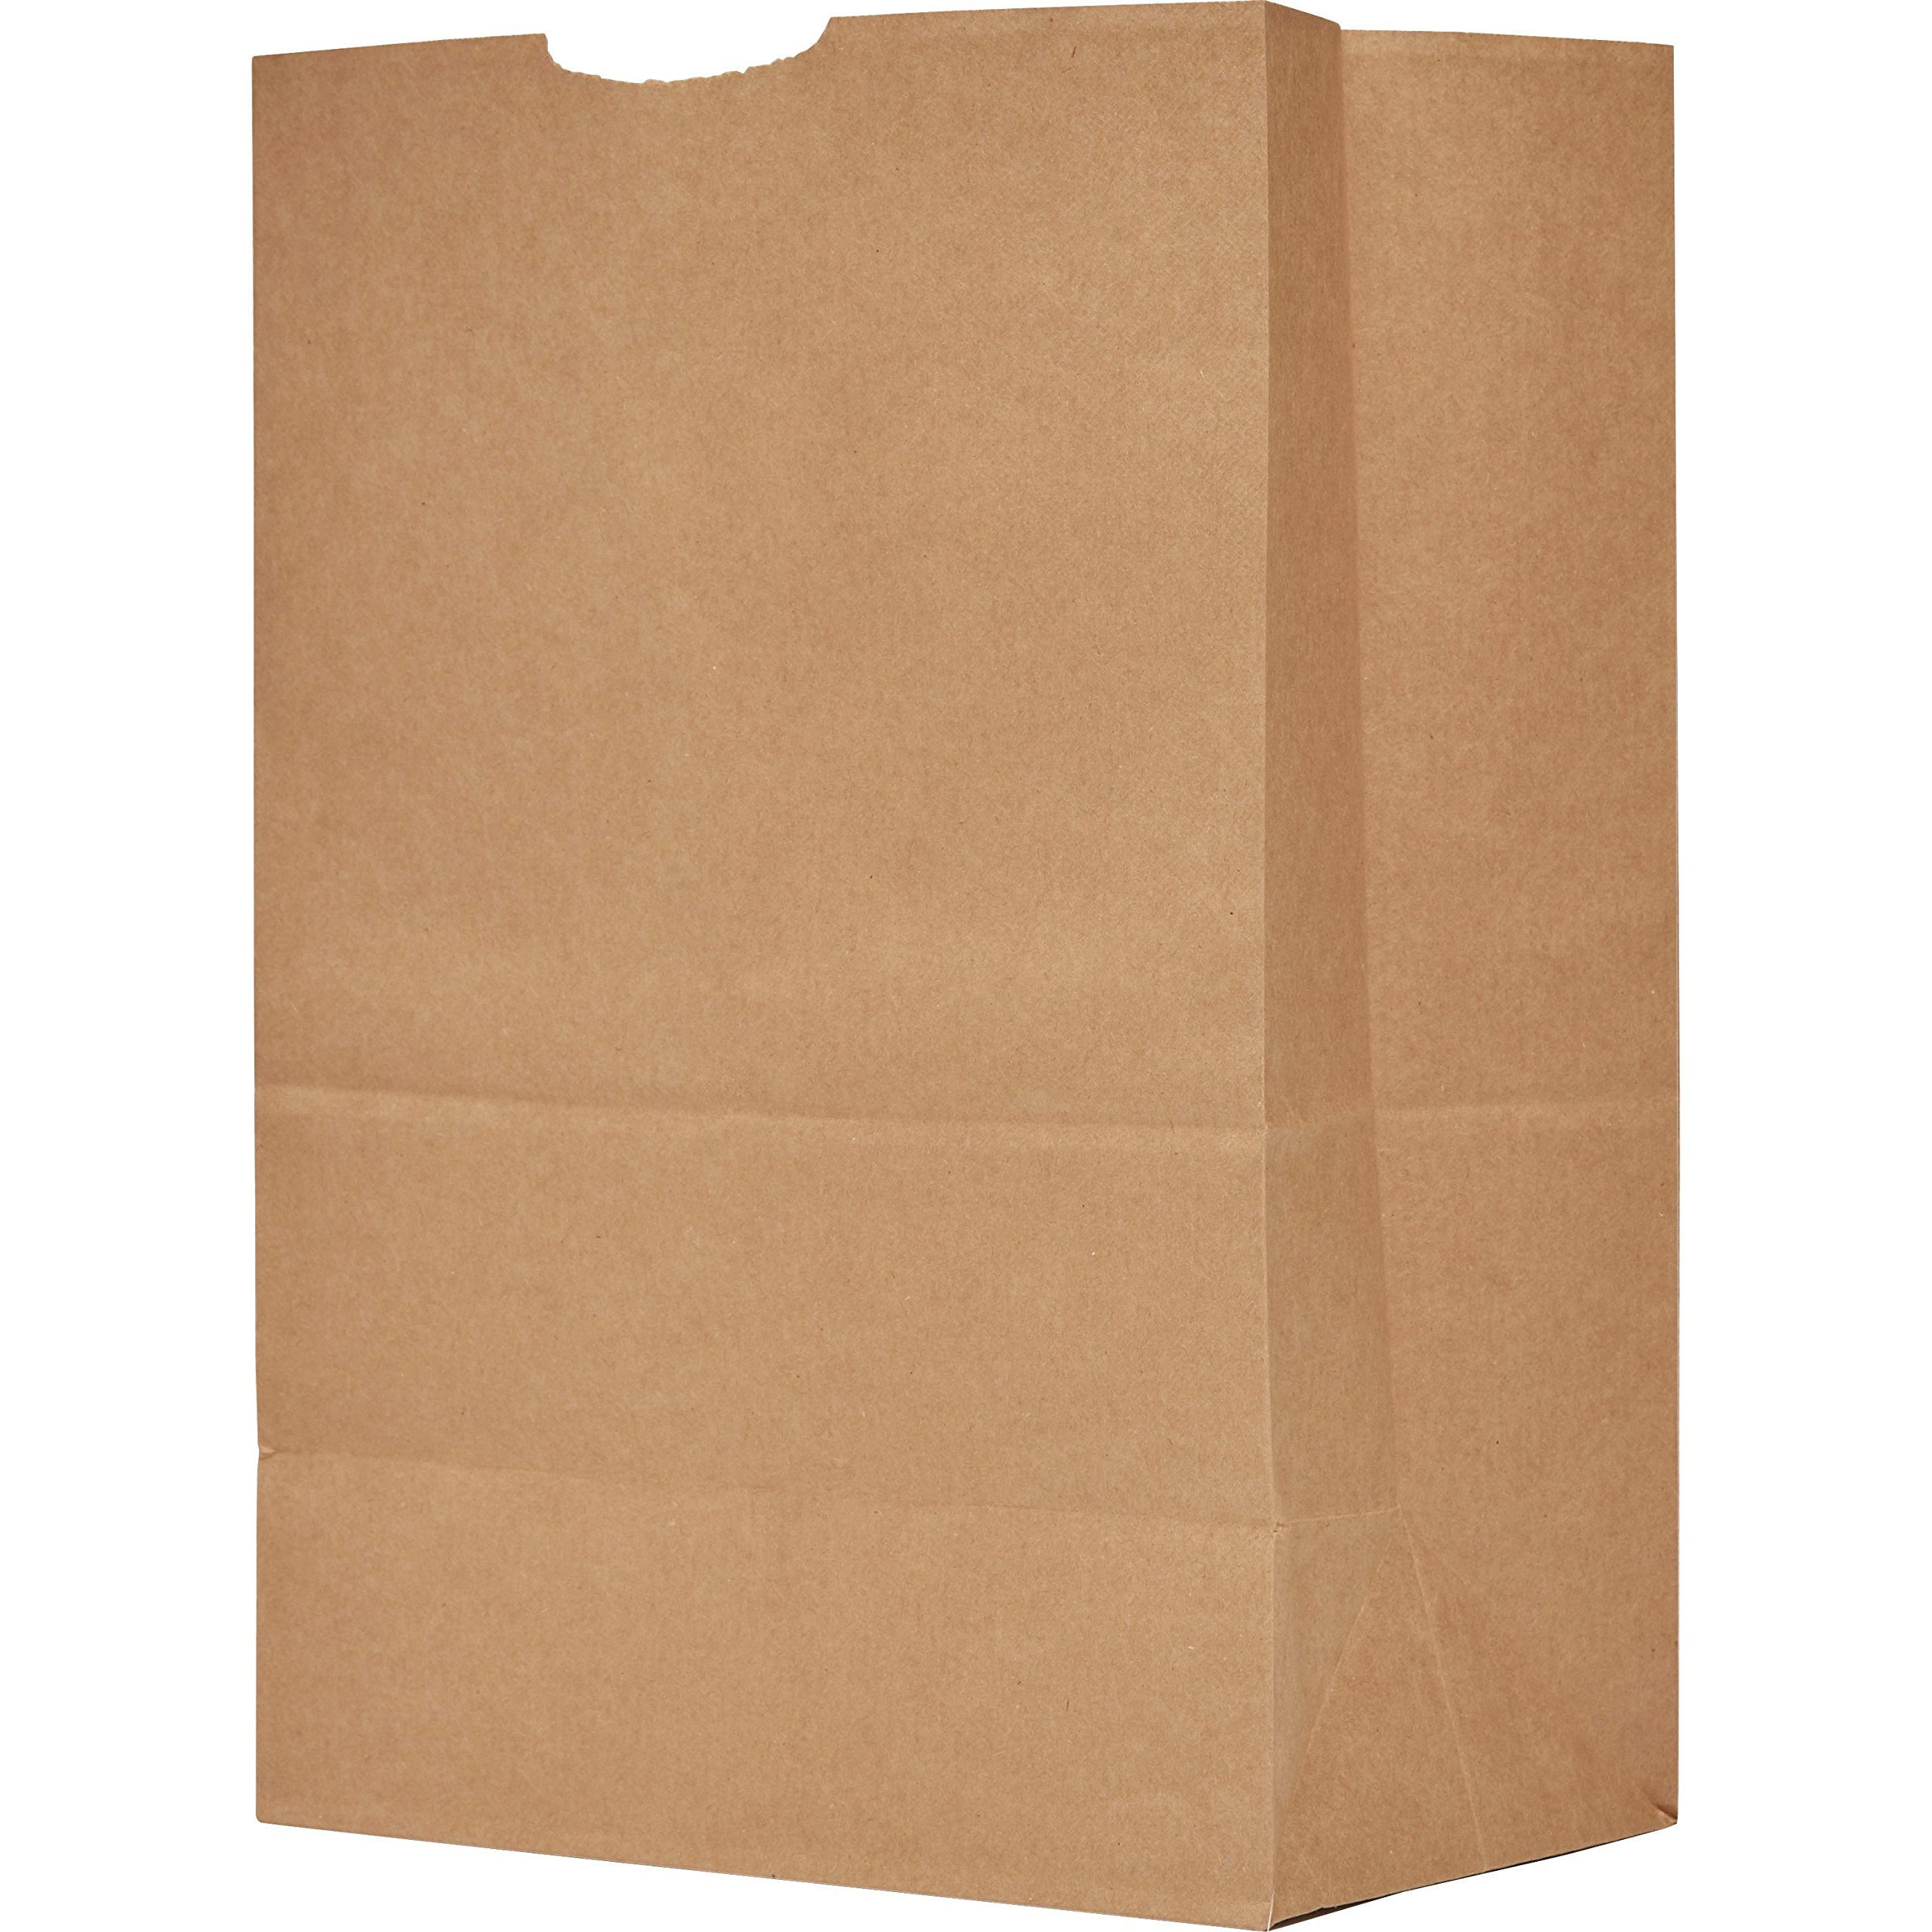 """(#12-25 pcs) Kraft Brown Paper Bags Reusable Grocery Bags Great Gift Bag Recyclable Shopping Bags Lunch Snack Bags Size 7.5""""L x 4.5"""" x 14.0""""H"""